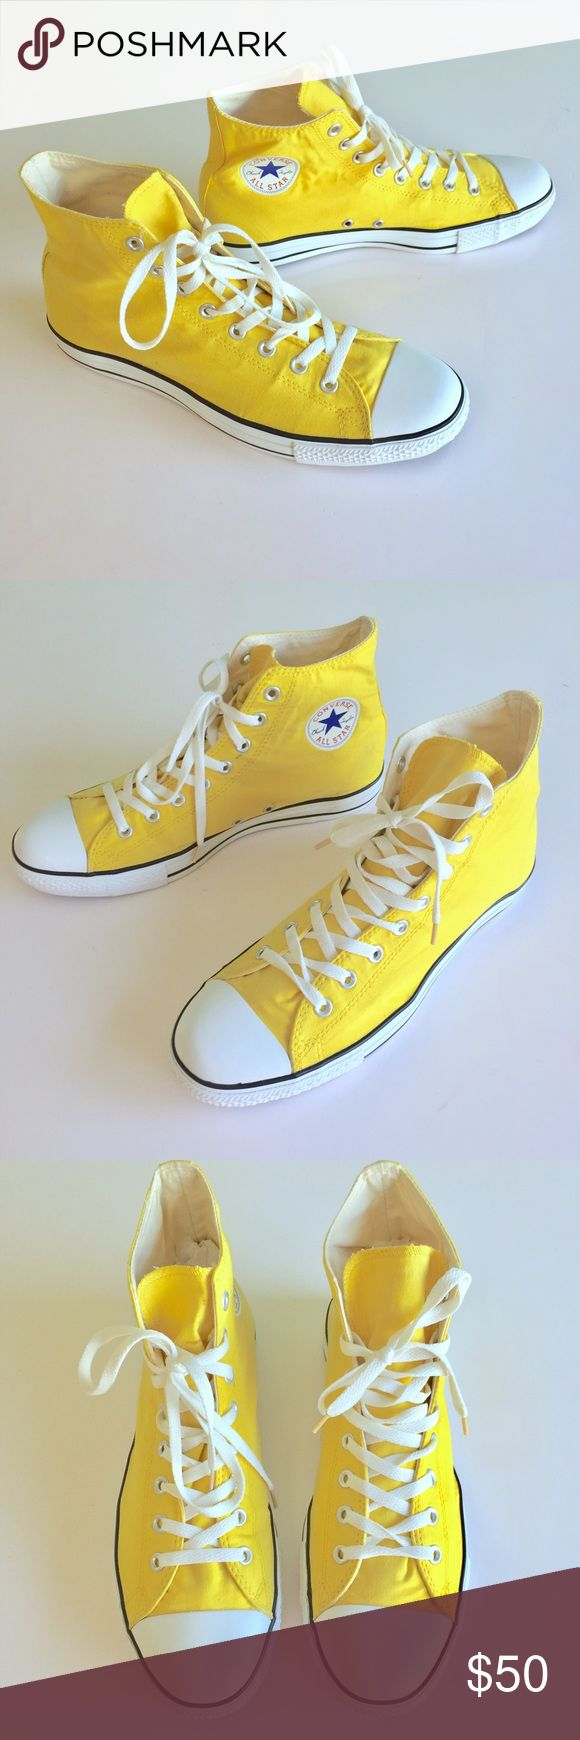 Yellow Converse All Star High Tops Chuck Taylor 12 Up for Sale gently worn yellow Converse All Star High Tops Mans size 12 and Women 14. Sneakers have little stain on one the thong of the shoe, may show slight discoloration on yellow canvas but it's very minor and barely noticeable, just disclosing that it is there. Check out my closet, bundle and give me your offer! Converse Shoes Sneakers